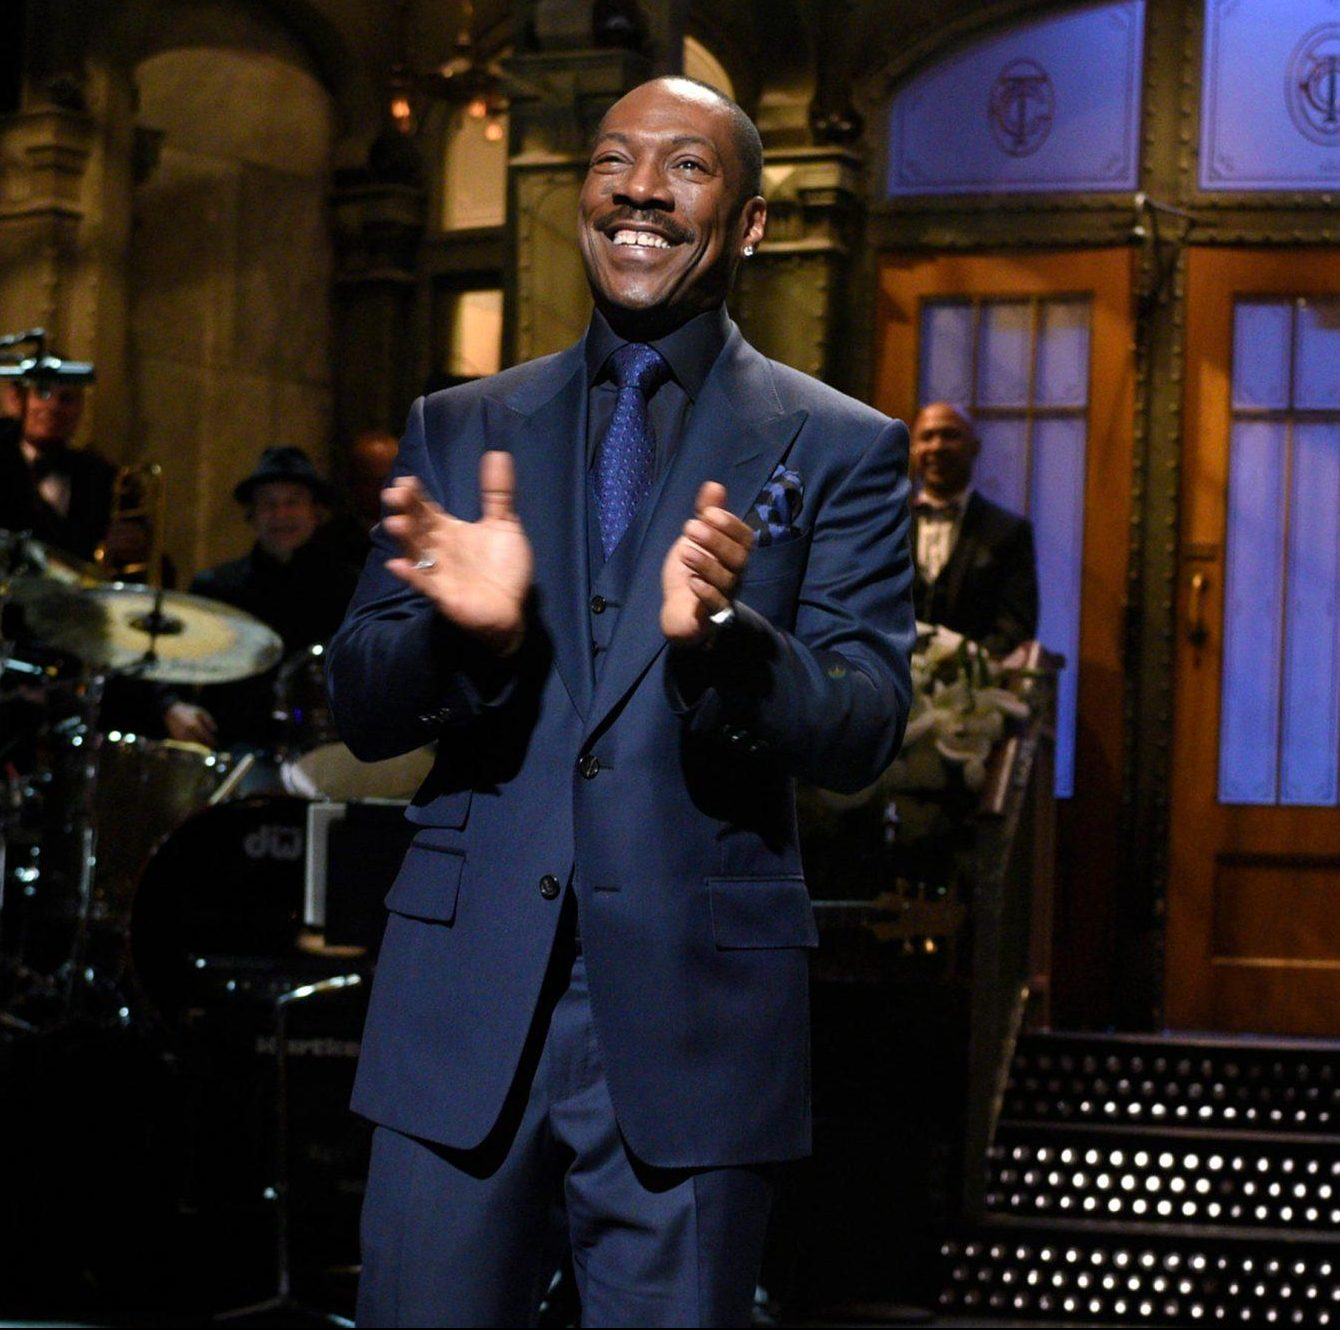 gettyimages 463540674 2000 e1602599014849 20 Things You May Not Have Realised About Eddie Murphy